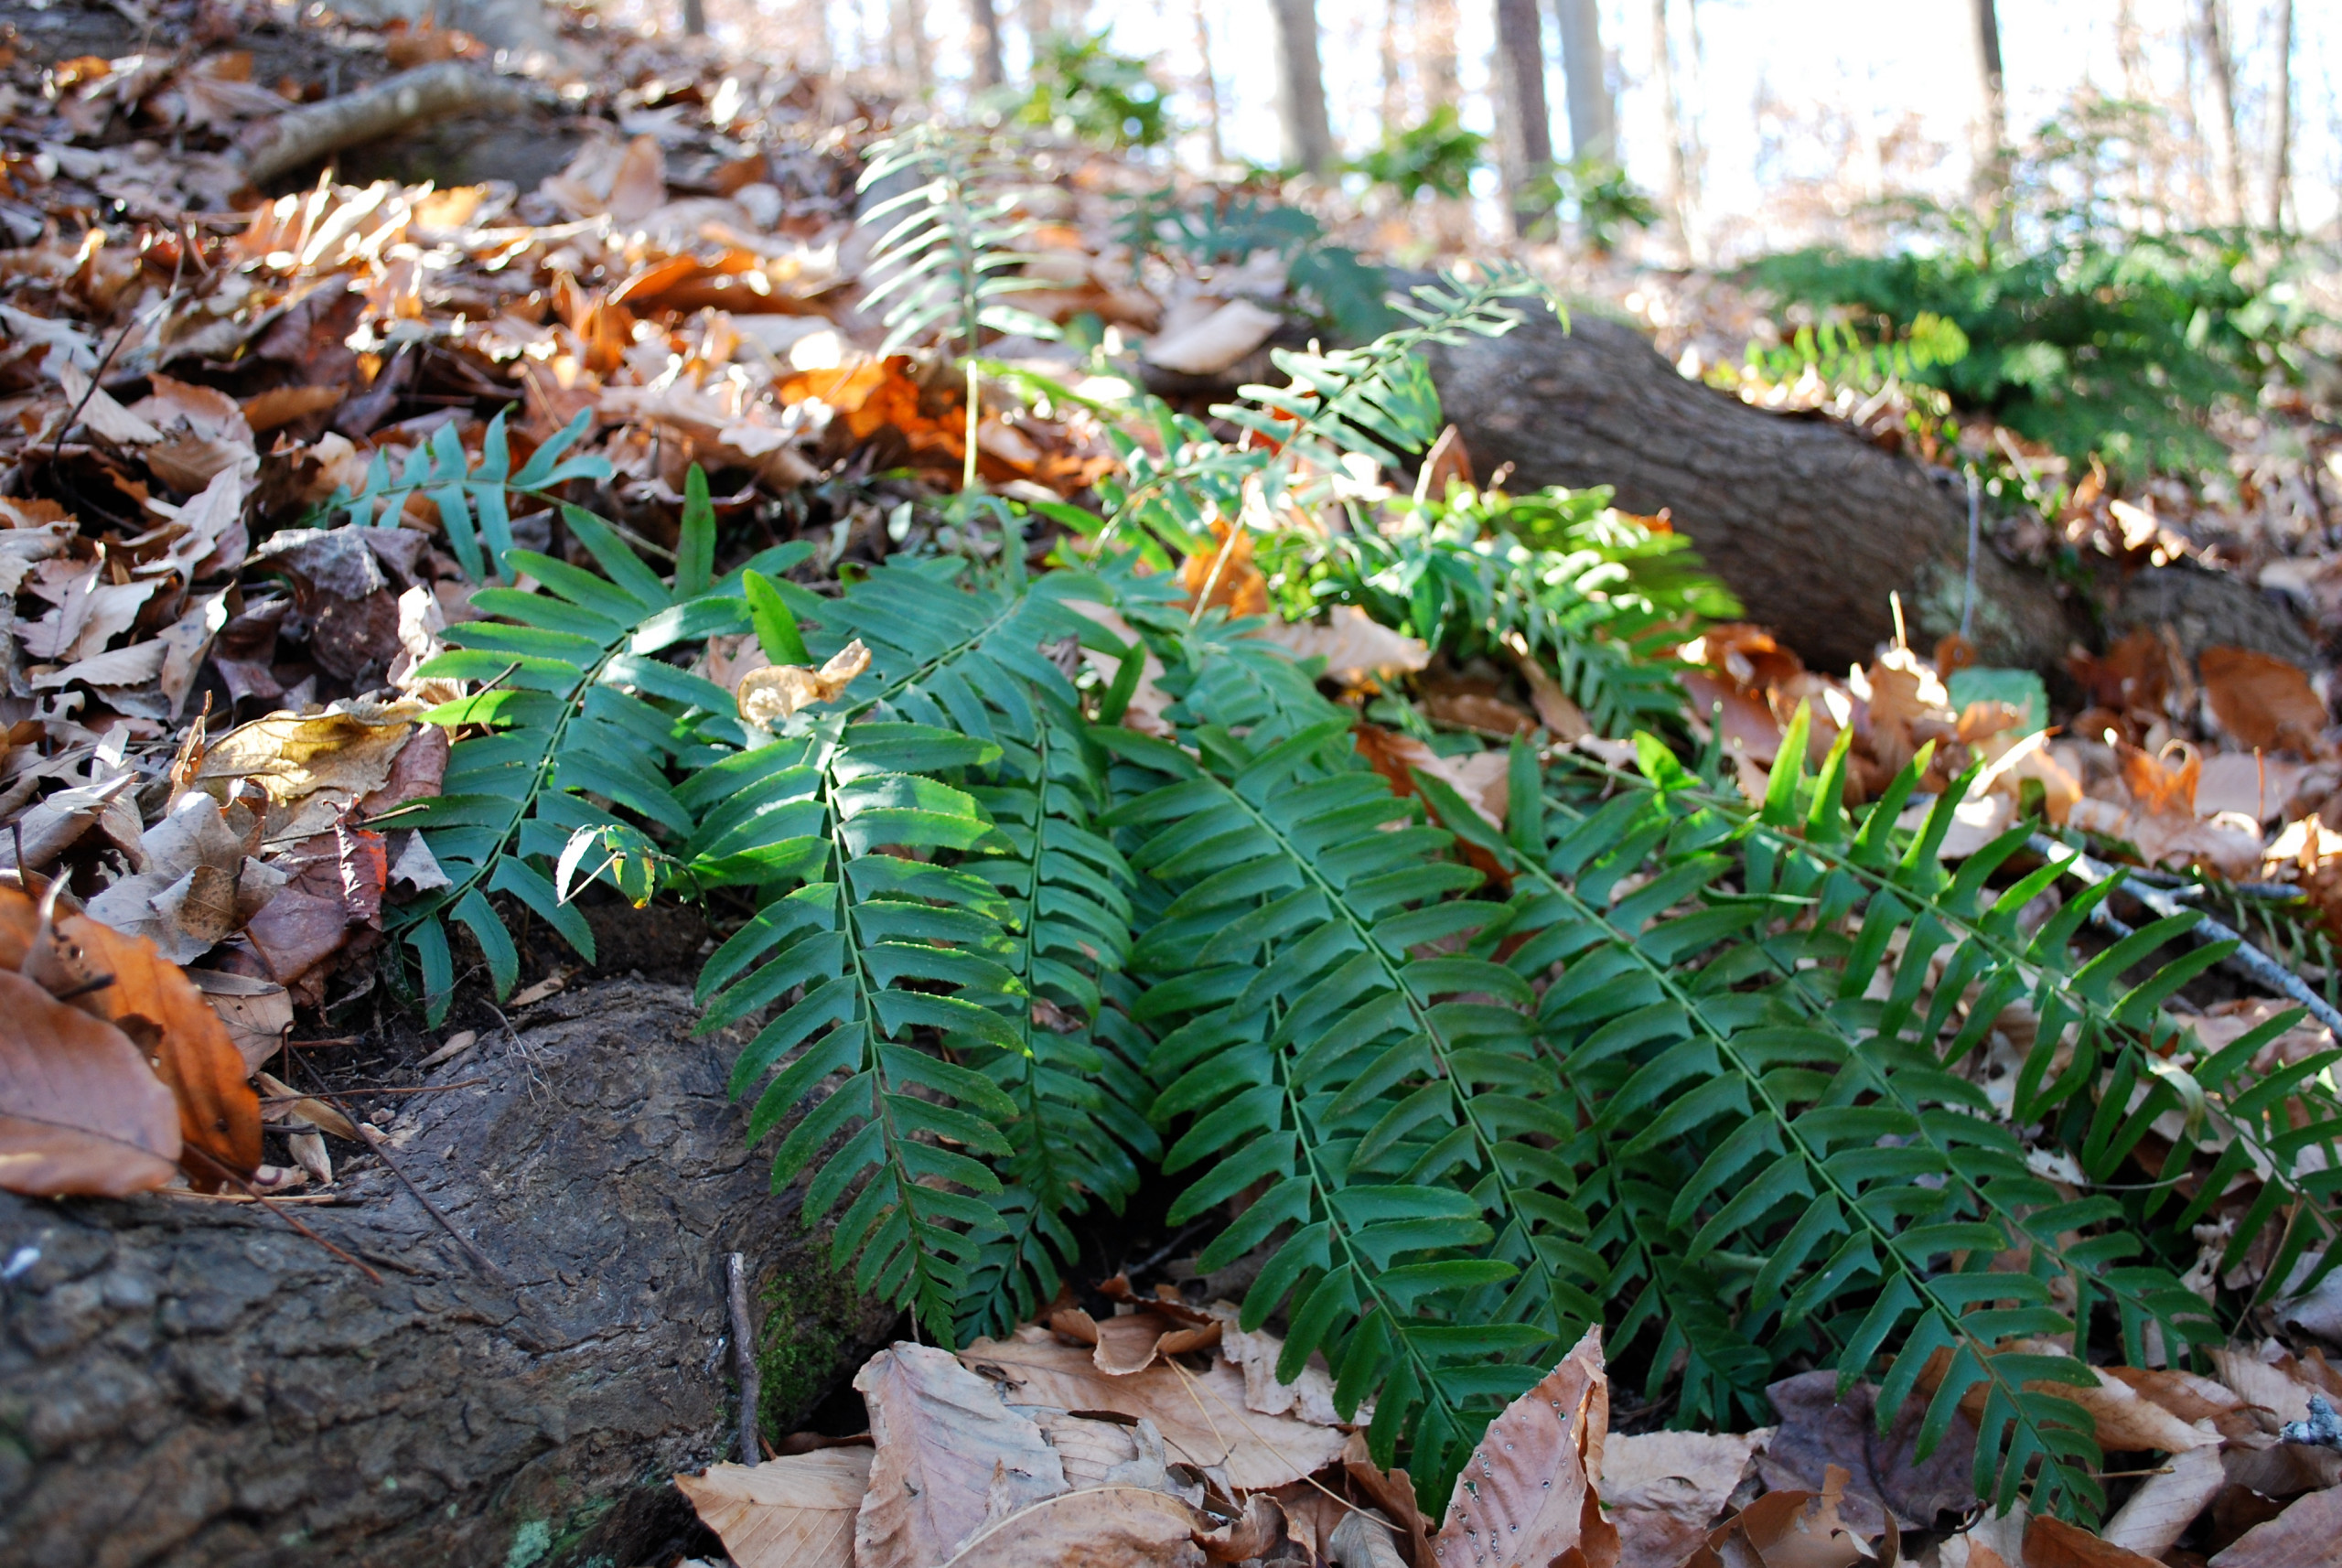 Christmas fern growing in situ